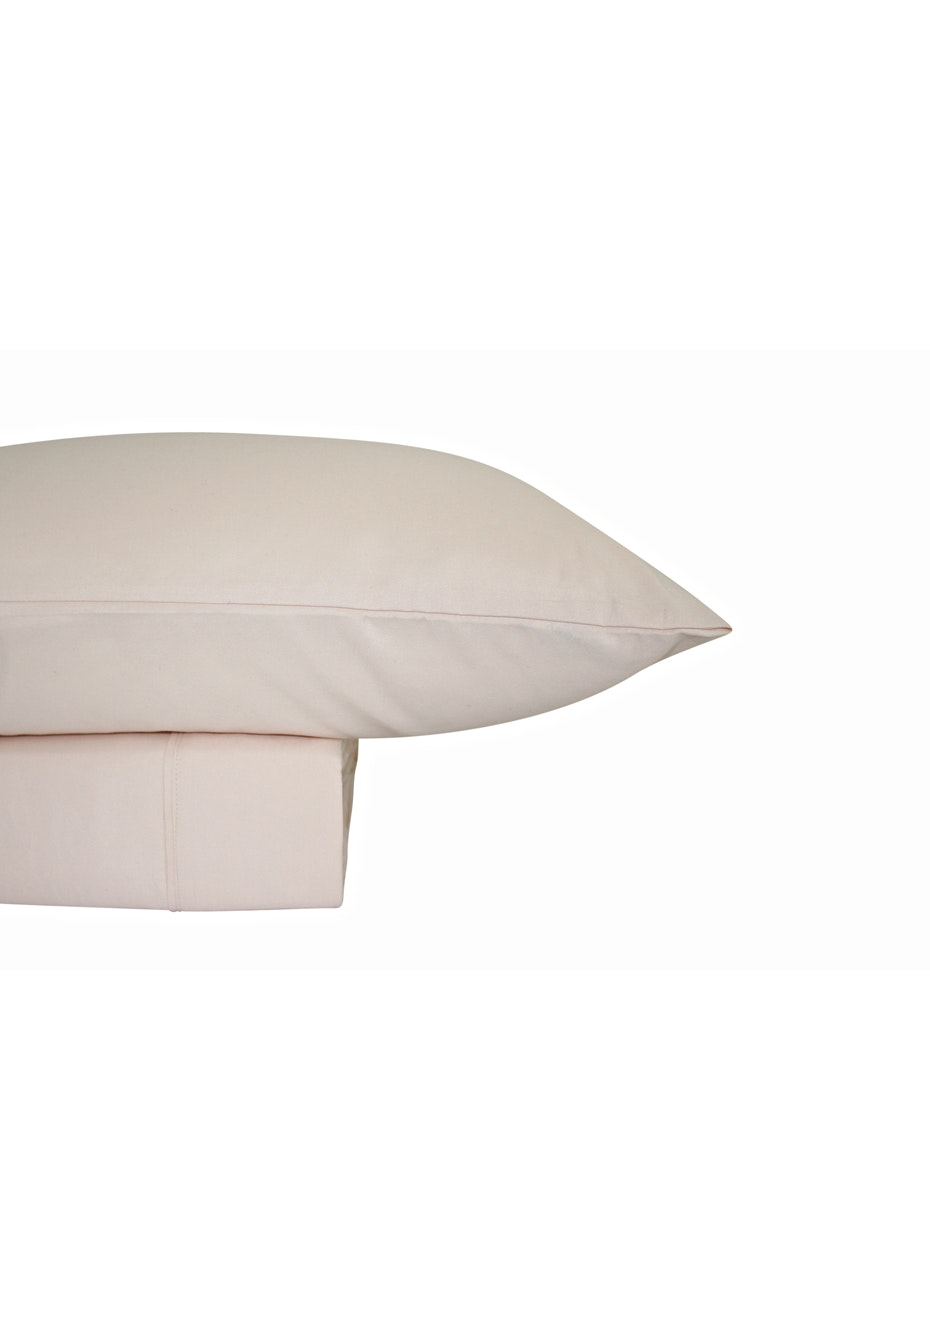 Thermal Flannel Sheet Sets - Sand - Double Bed